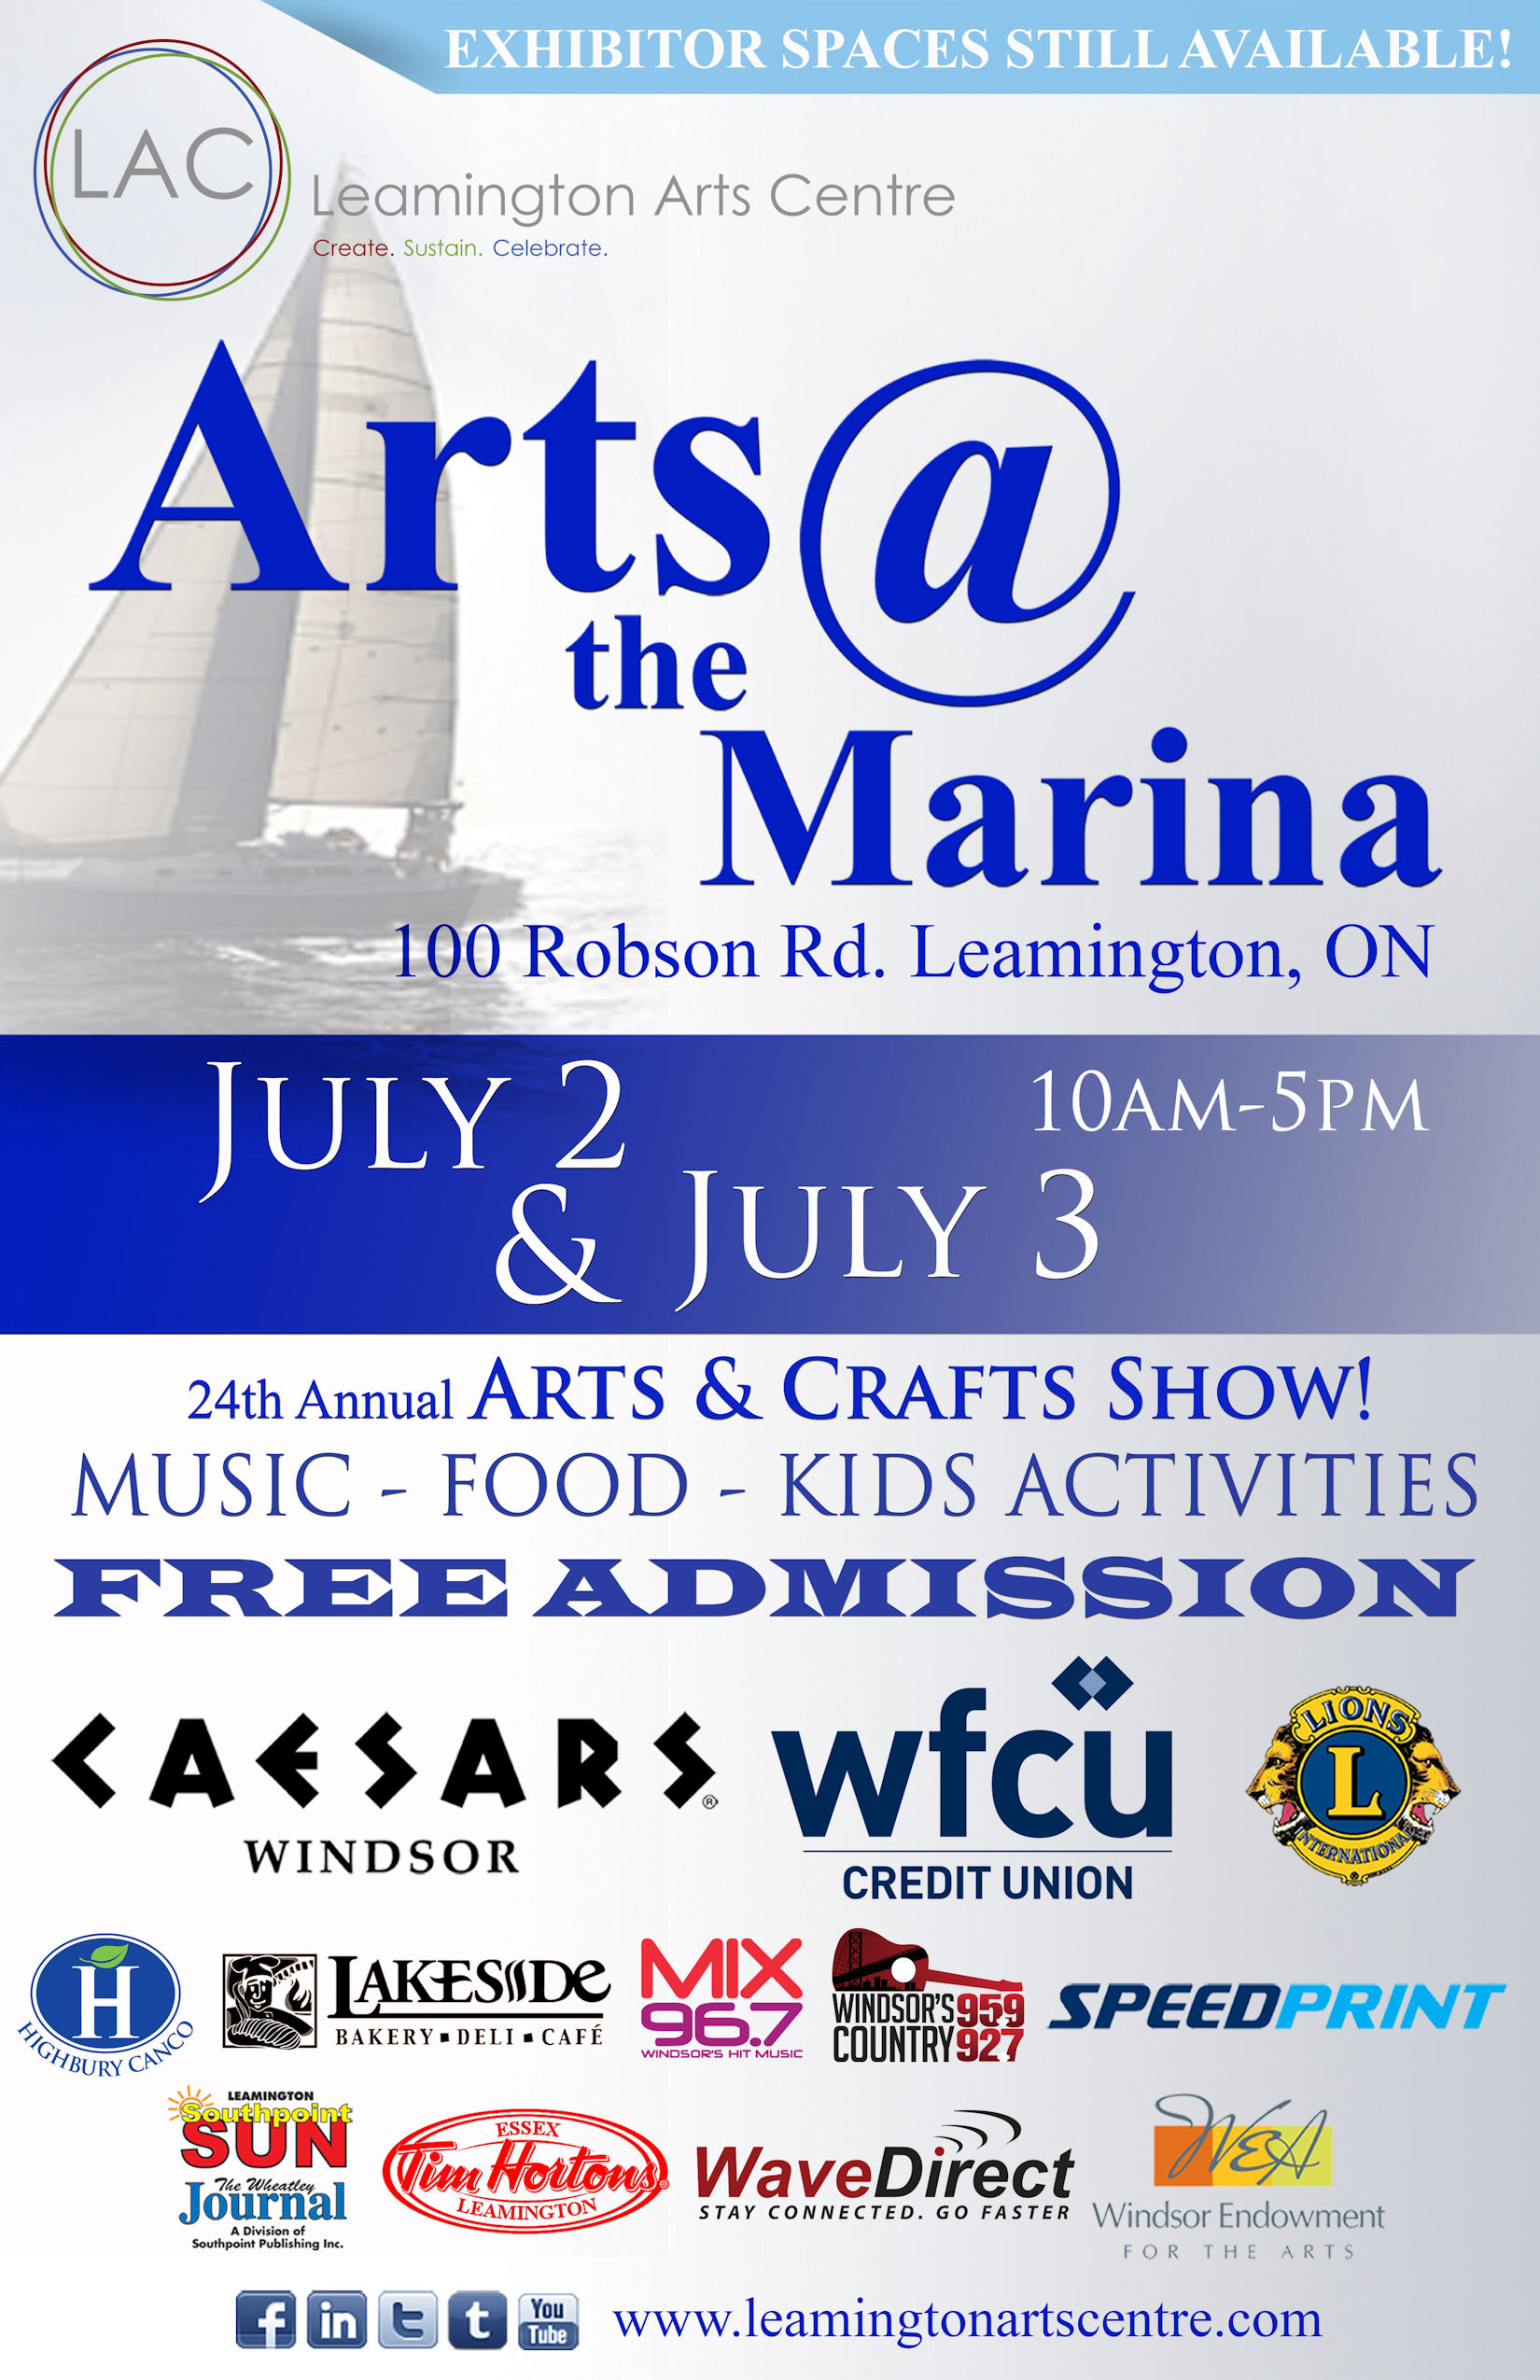 Arts @ the Marina Poster - July 2-3, 2016 10 am - 5 pm, Leamington Marina, 100 Robson Road, Leamington